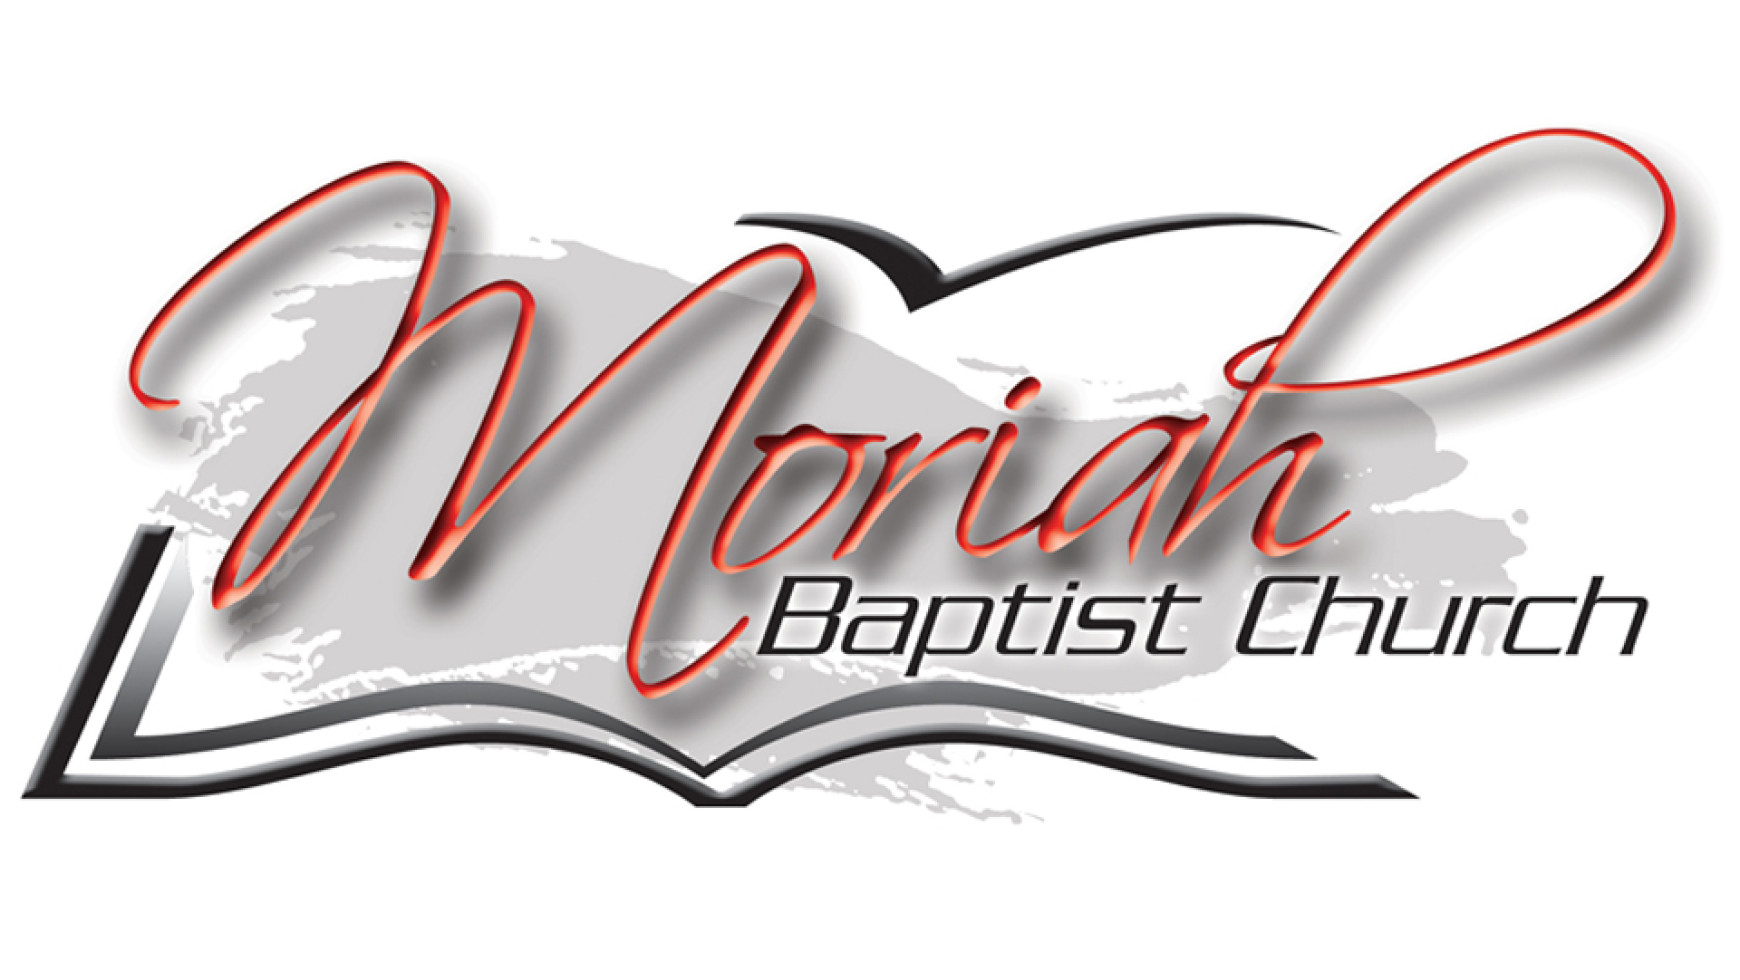 2017 August Meeting – Moriah Baptist Church in Ft. Oglethorpe, GA